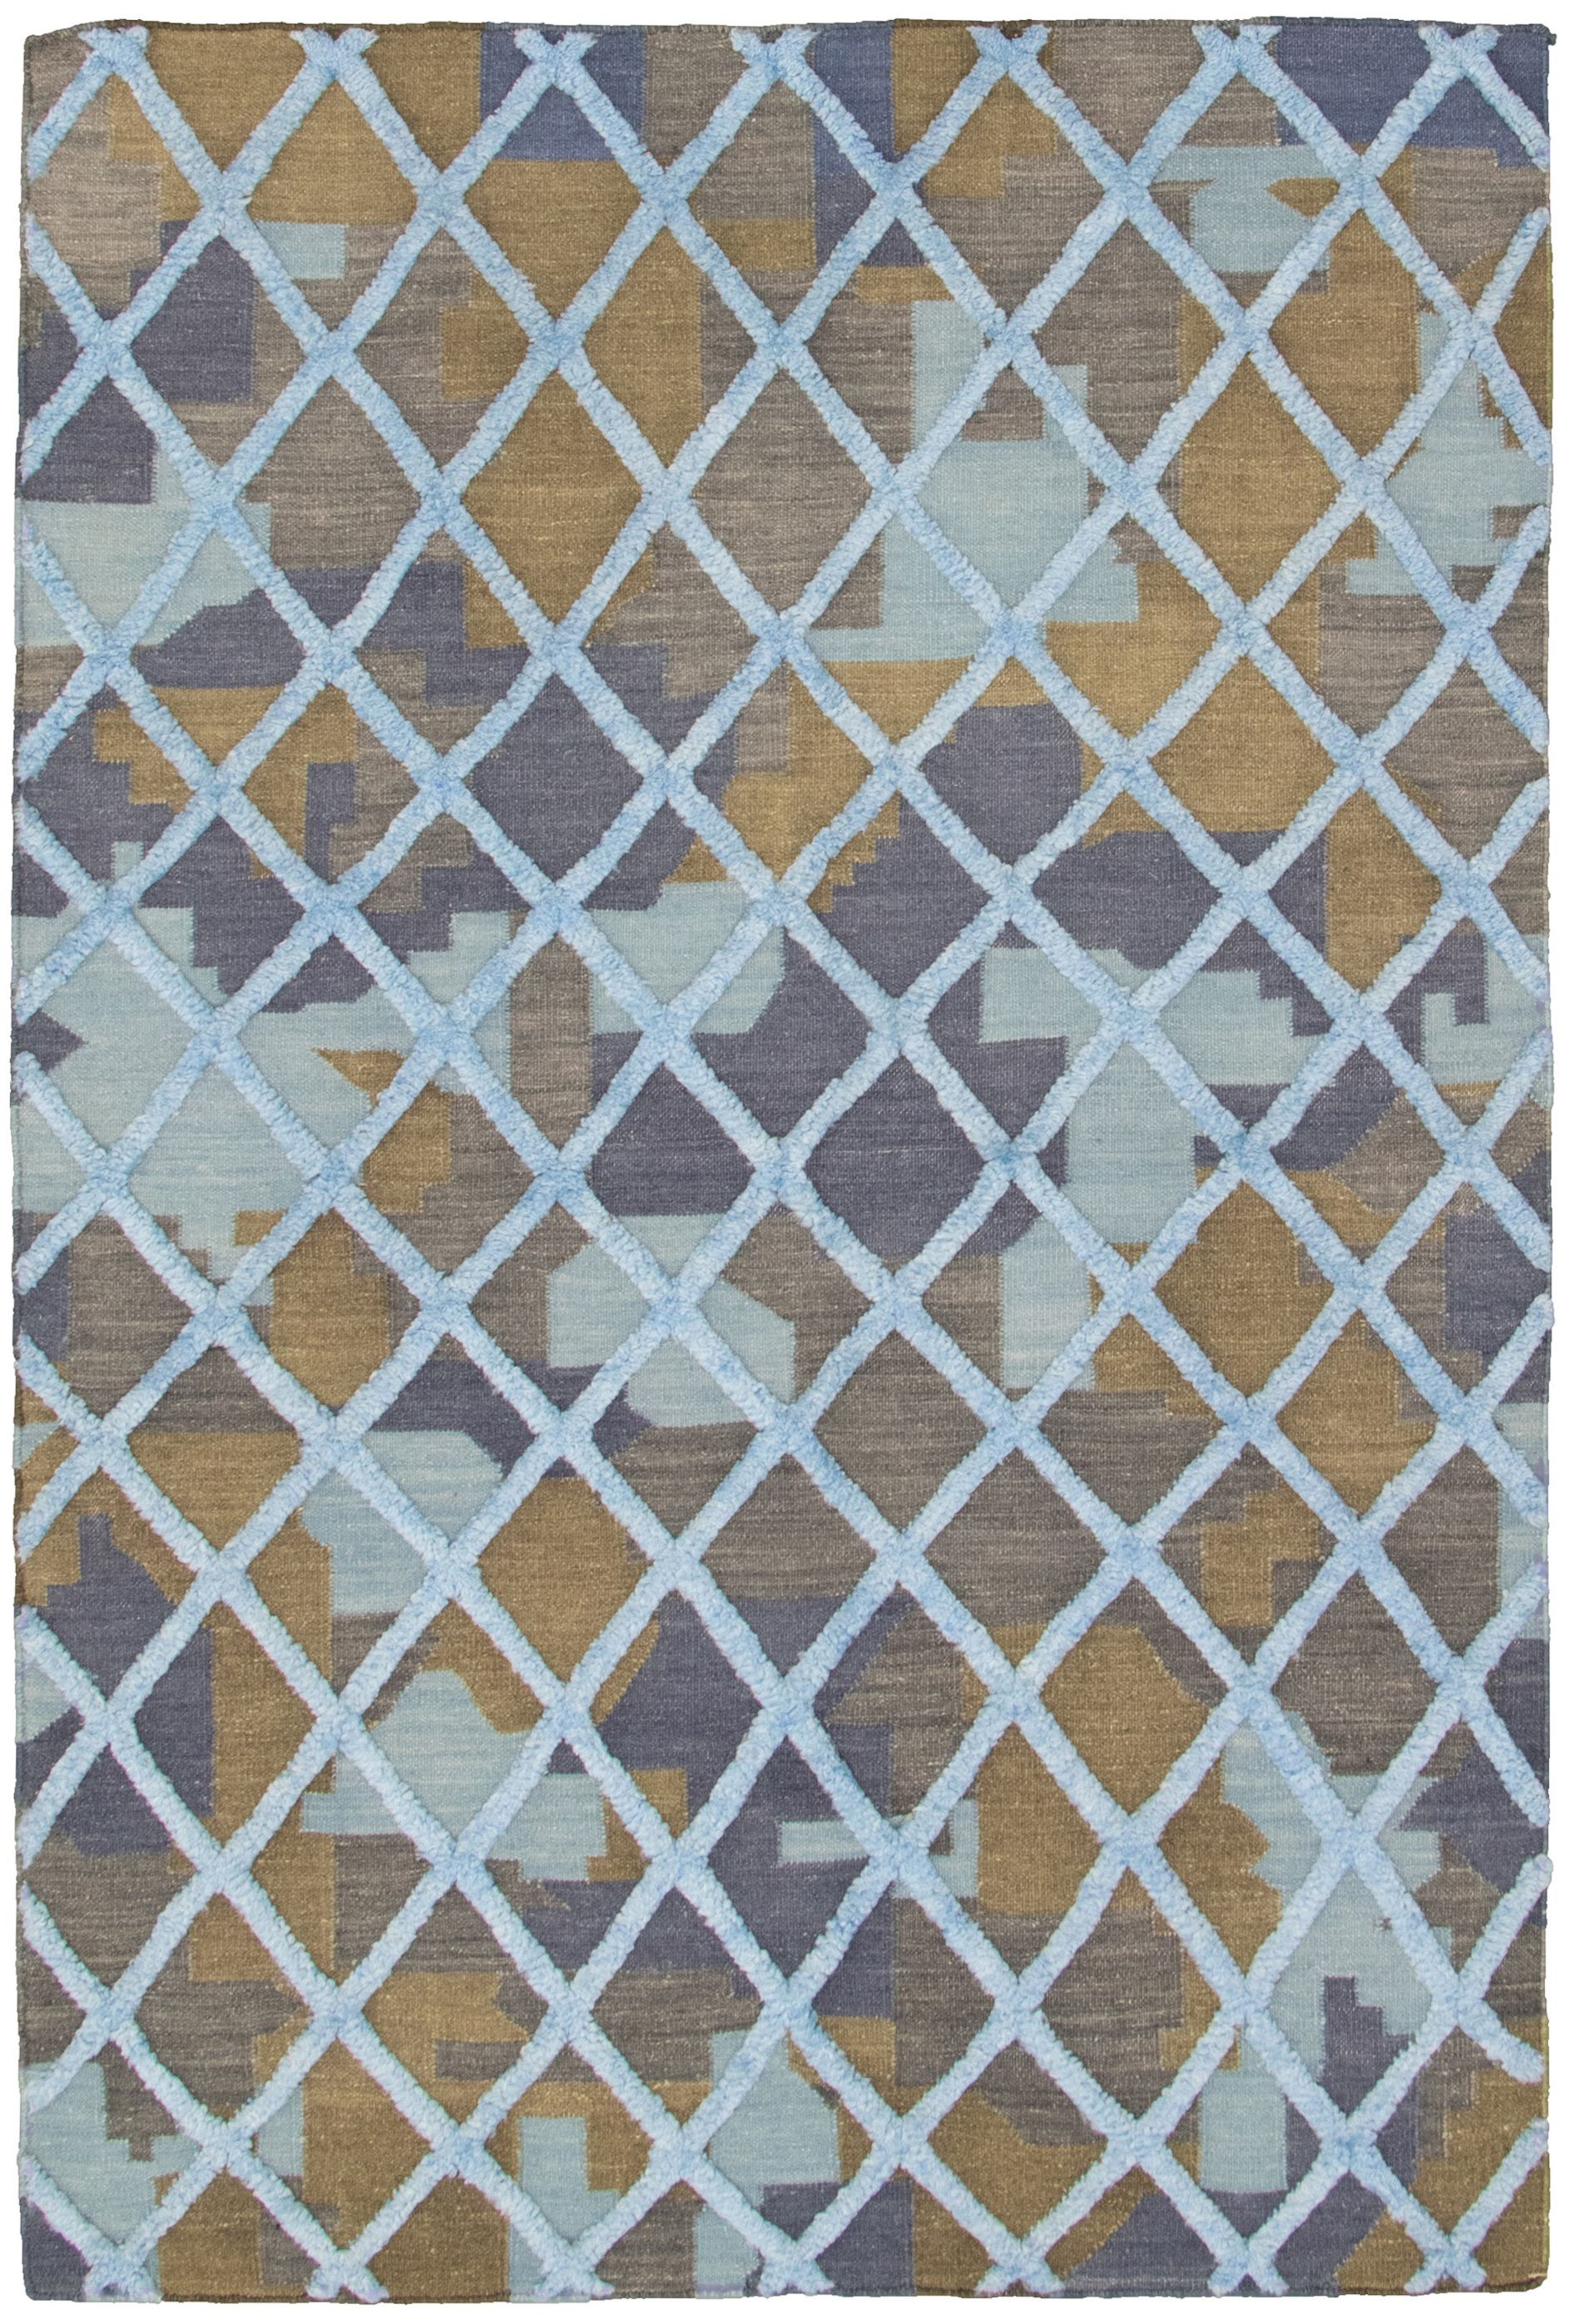 "Hand woven Cambridge Light Blue , Navy Blue Wool Kilim 5'3"" x 7'11"" Size: 5'3"" x 7'11"""